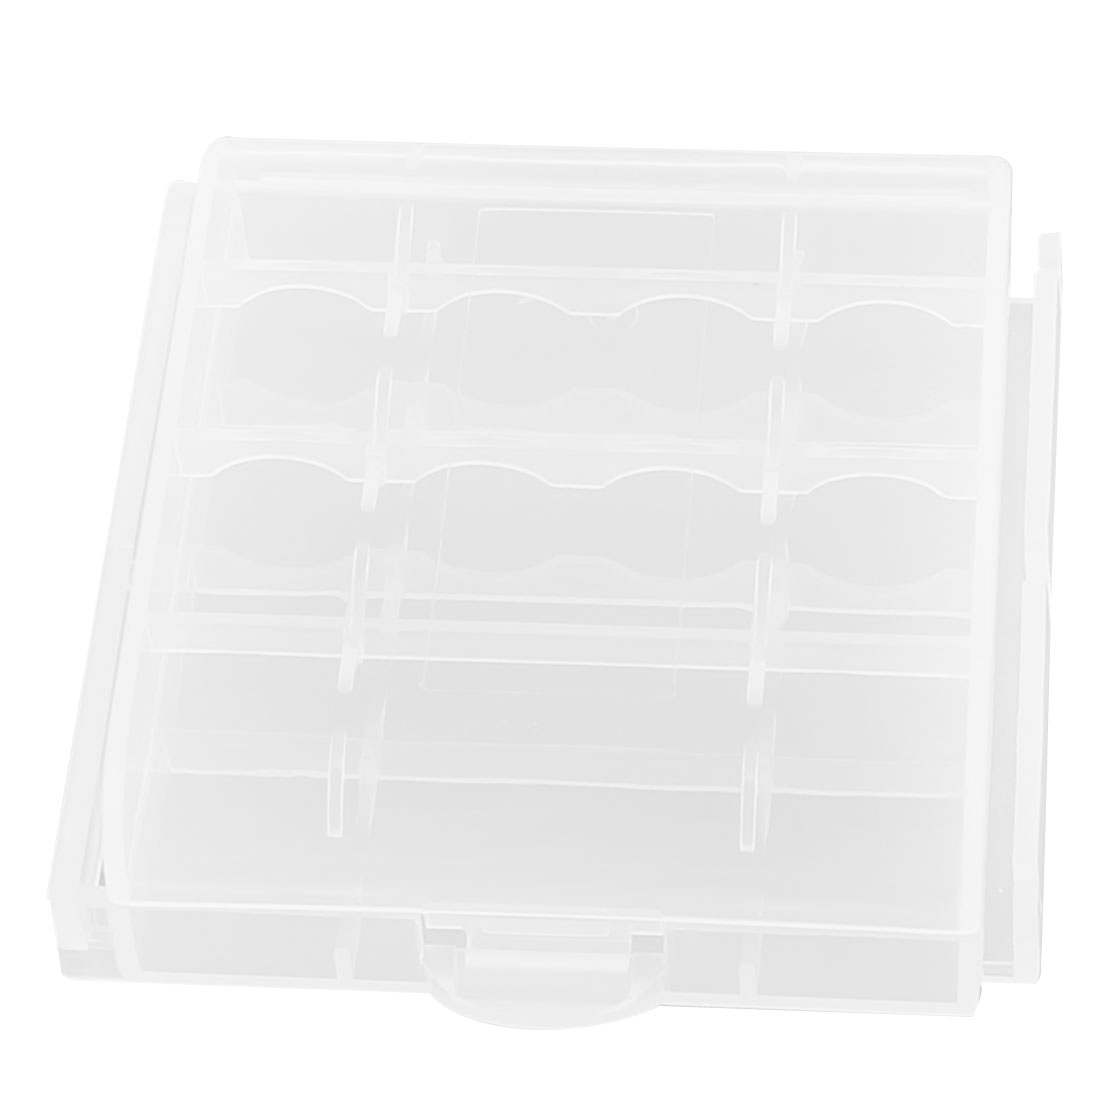 Hard Plastic Portable Case Holder Storage Box Clear for AA AAA Battery Batteries